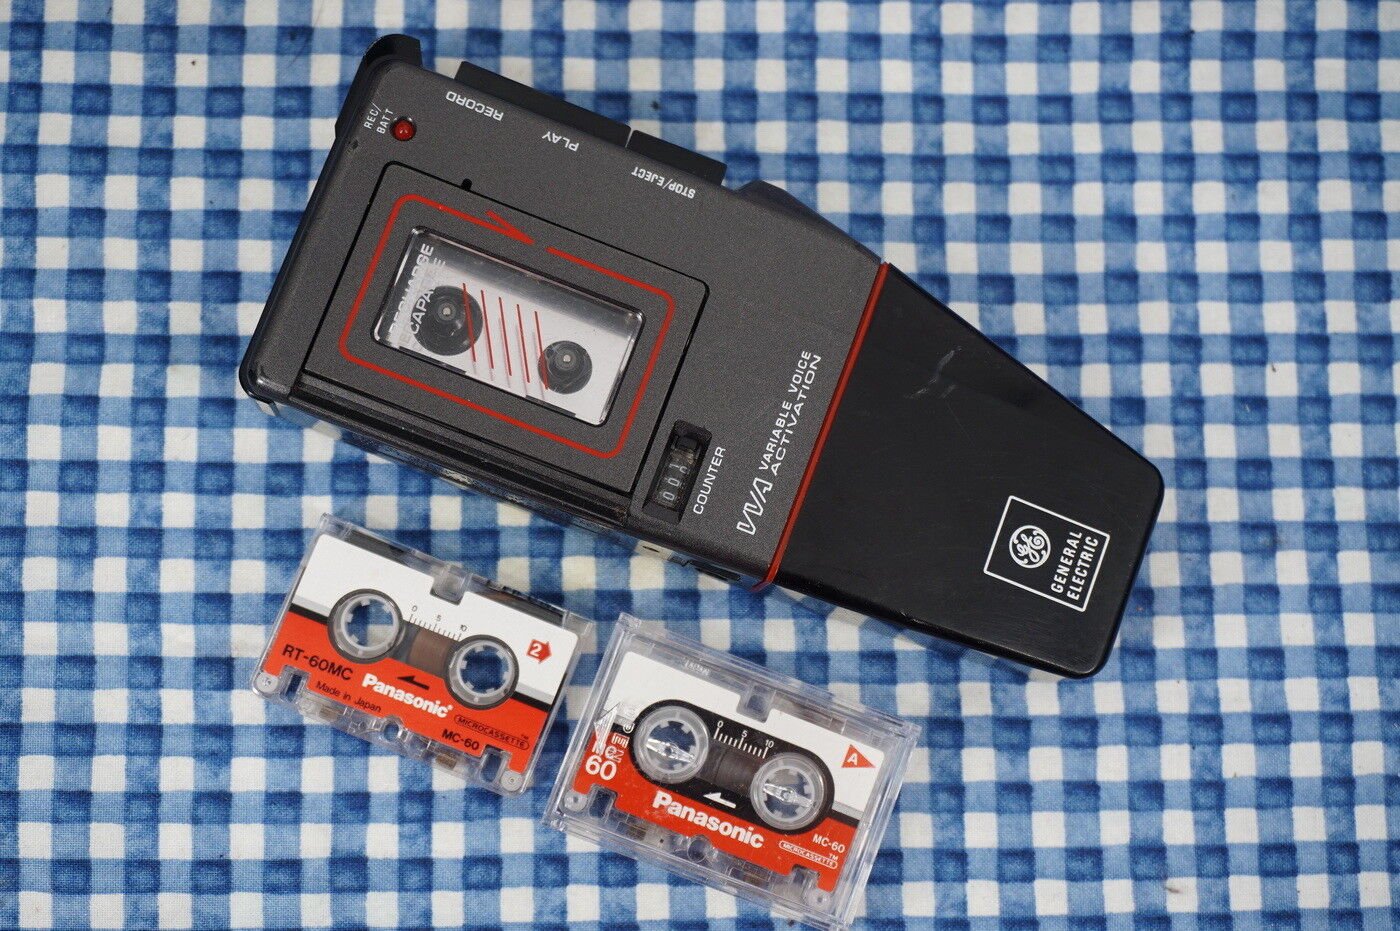 RARE General Electric GE 3-5336A Voice Activated Microcassette Recorder Retro